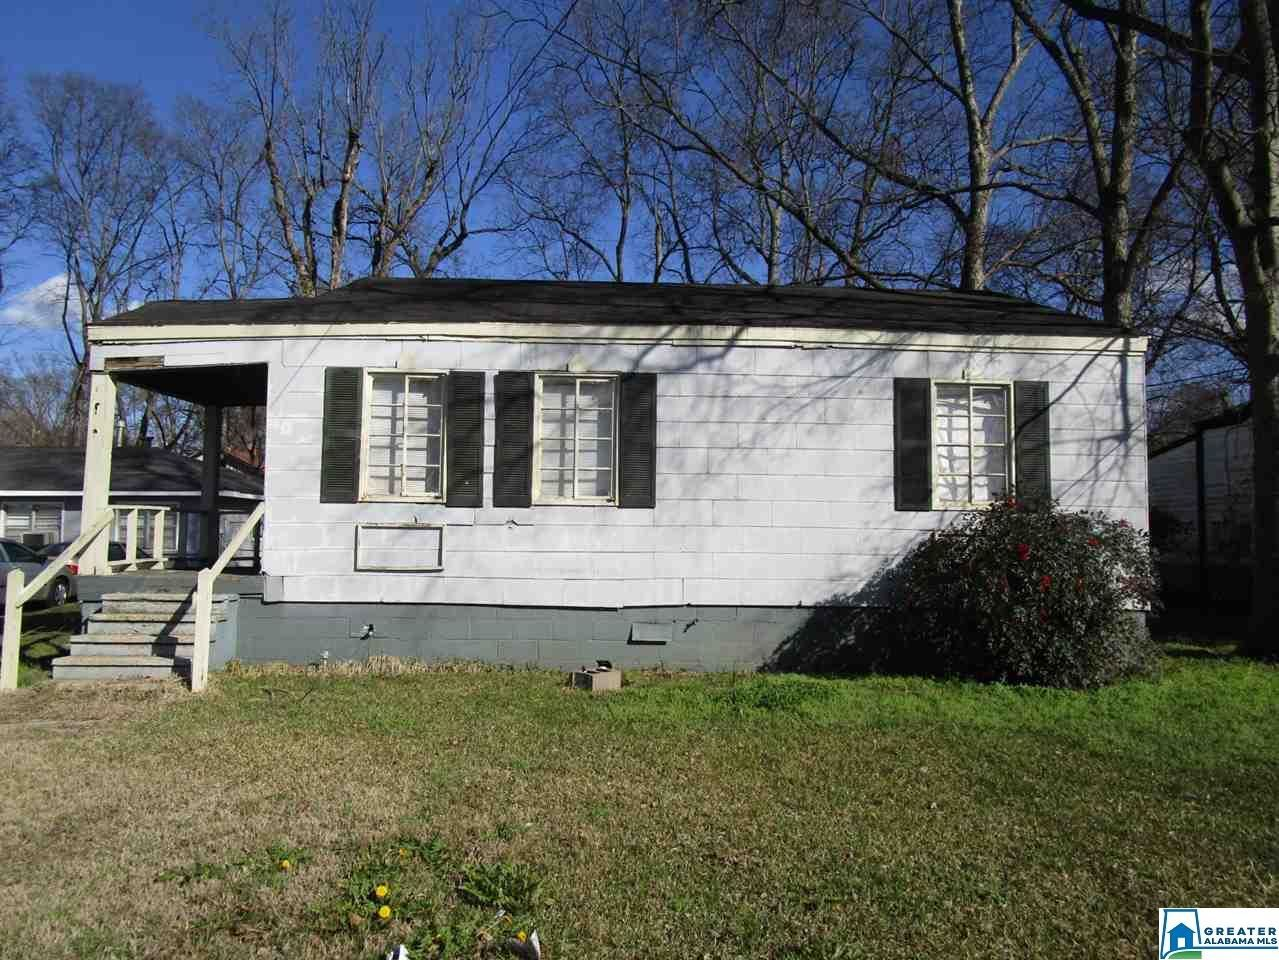 951 47TH ST N, Birmingham, AL 35212 - MLS#: 874206